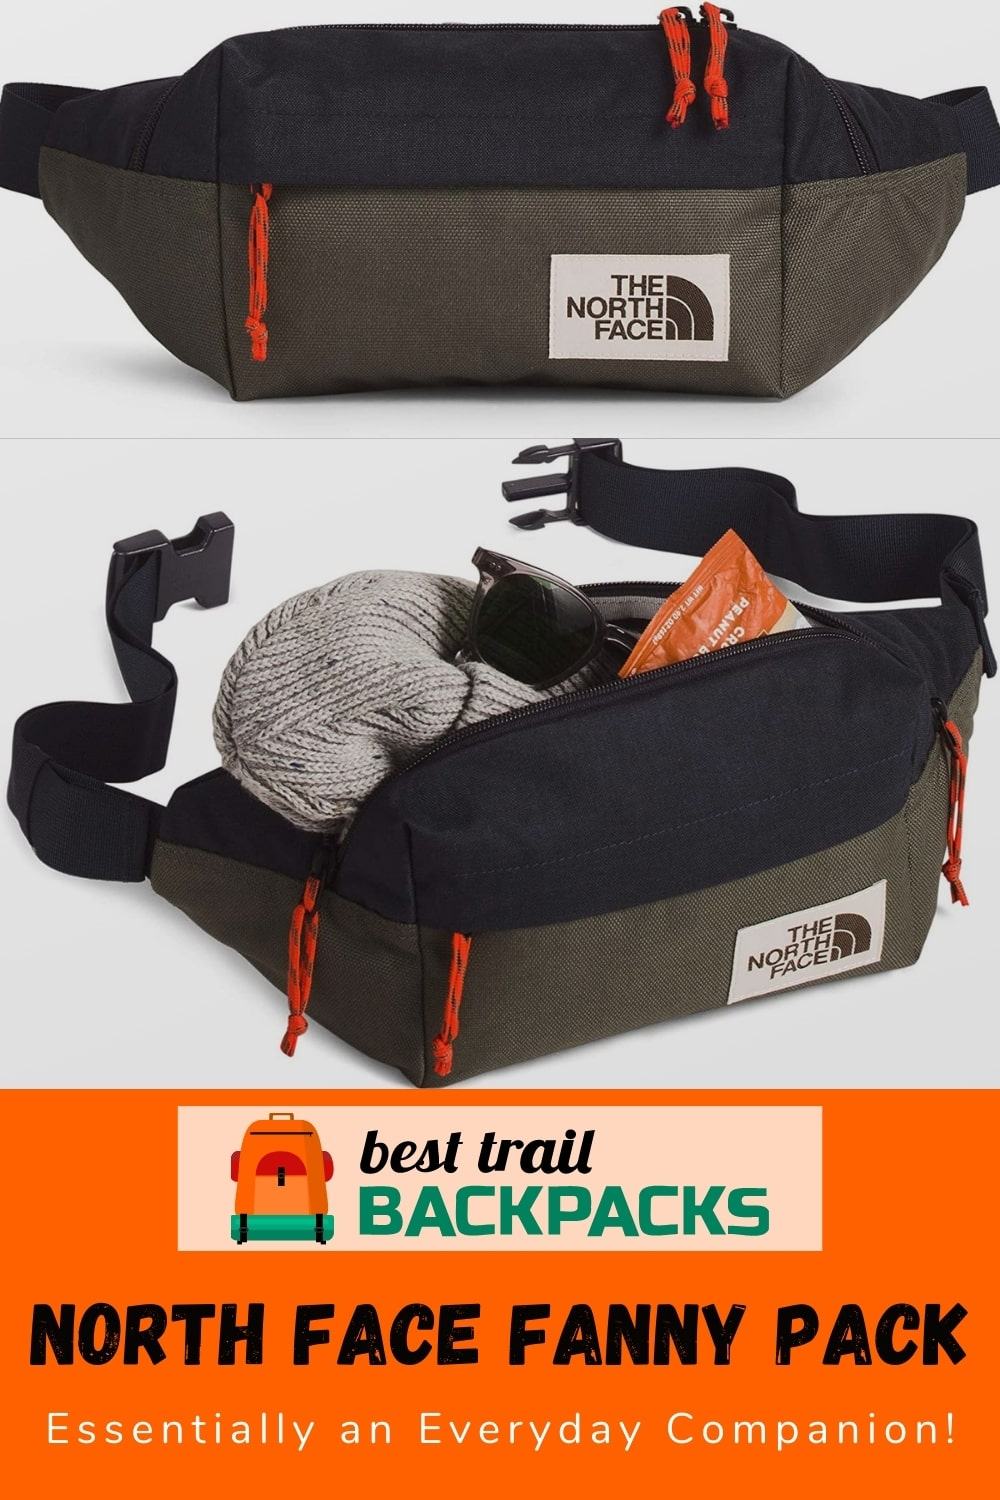 North Face Fanny Pack Review - An Overview